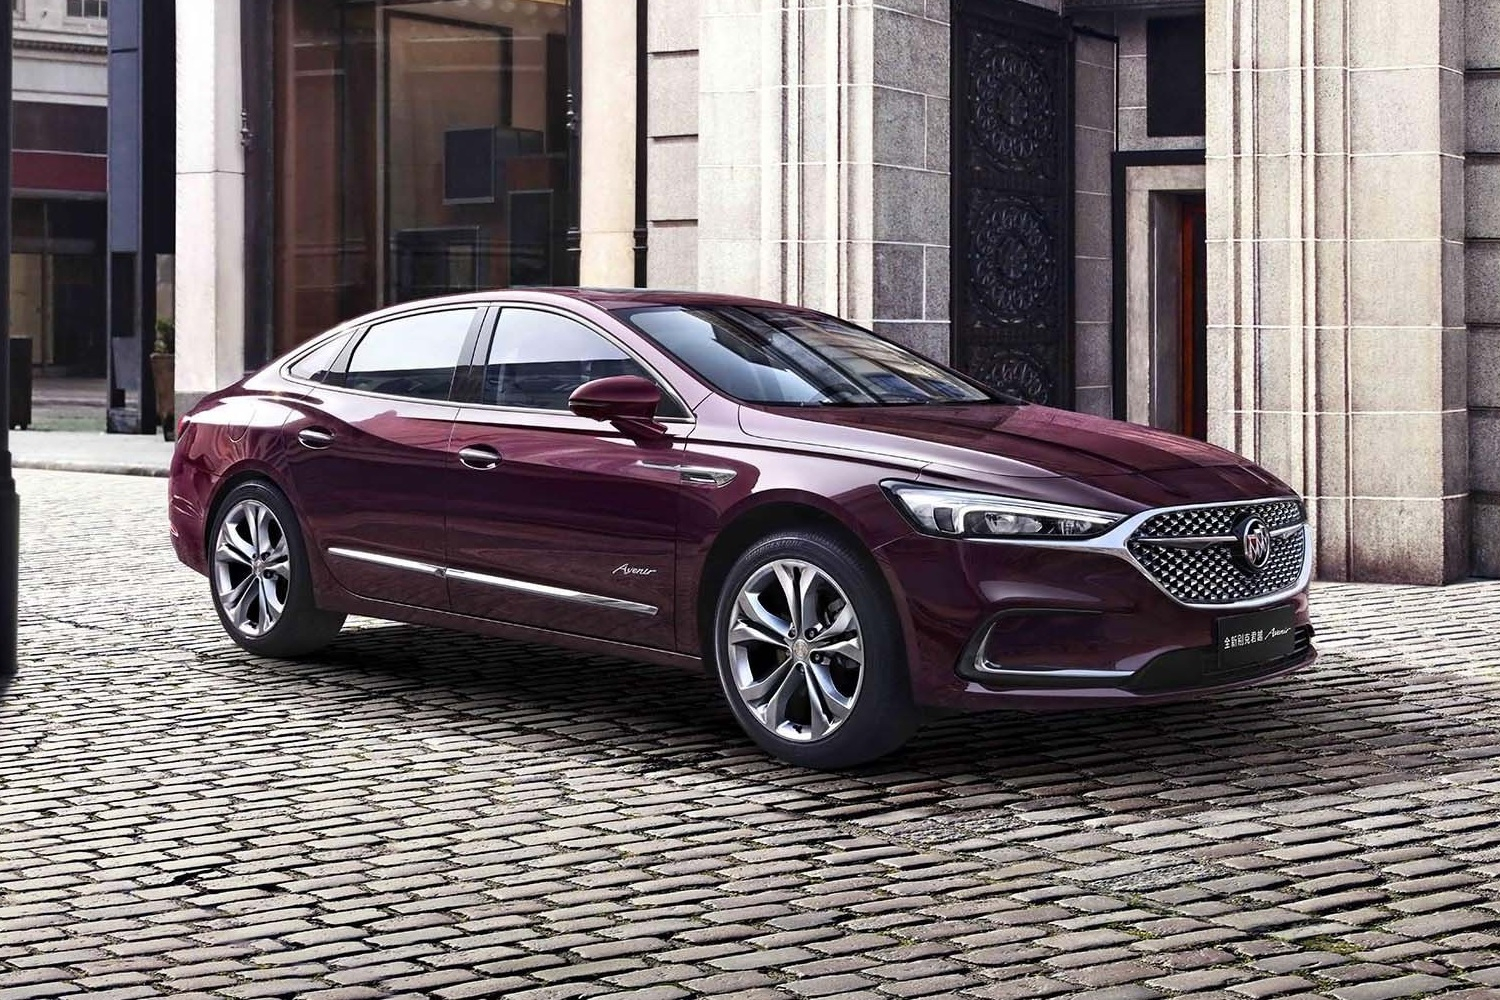 2020 Buick Lacrosse: Hot Or Not? | Gm Authority Price Of A 2022 Buick Lacrosse